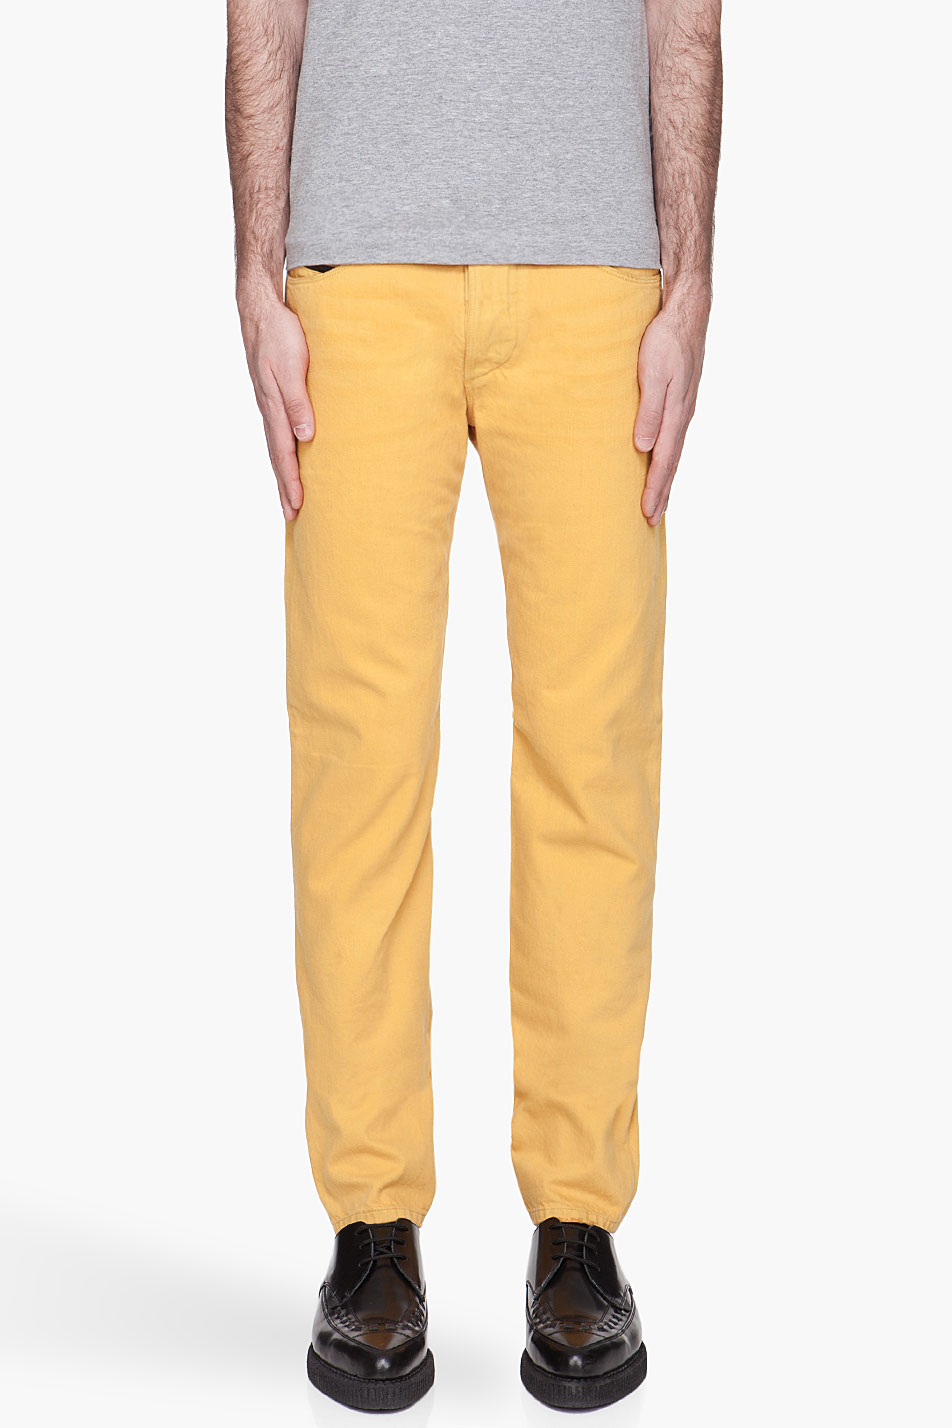 Diesel Black Gold Superbianp Jeans in Yellow for Men | Lyst